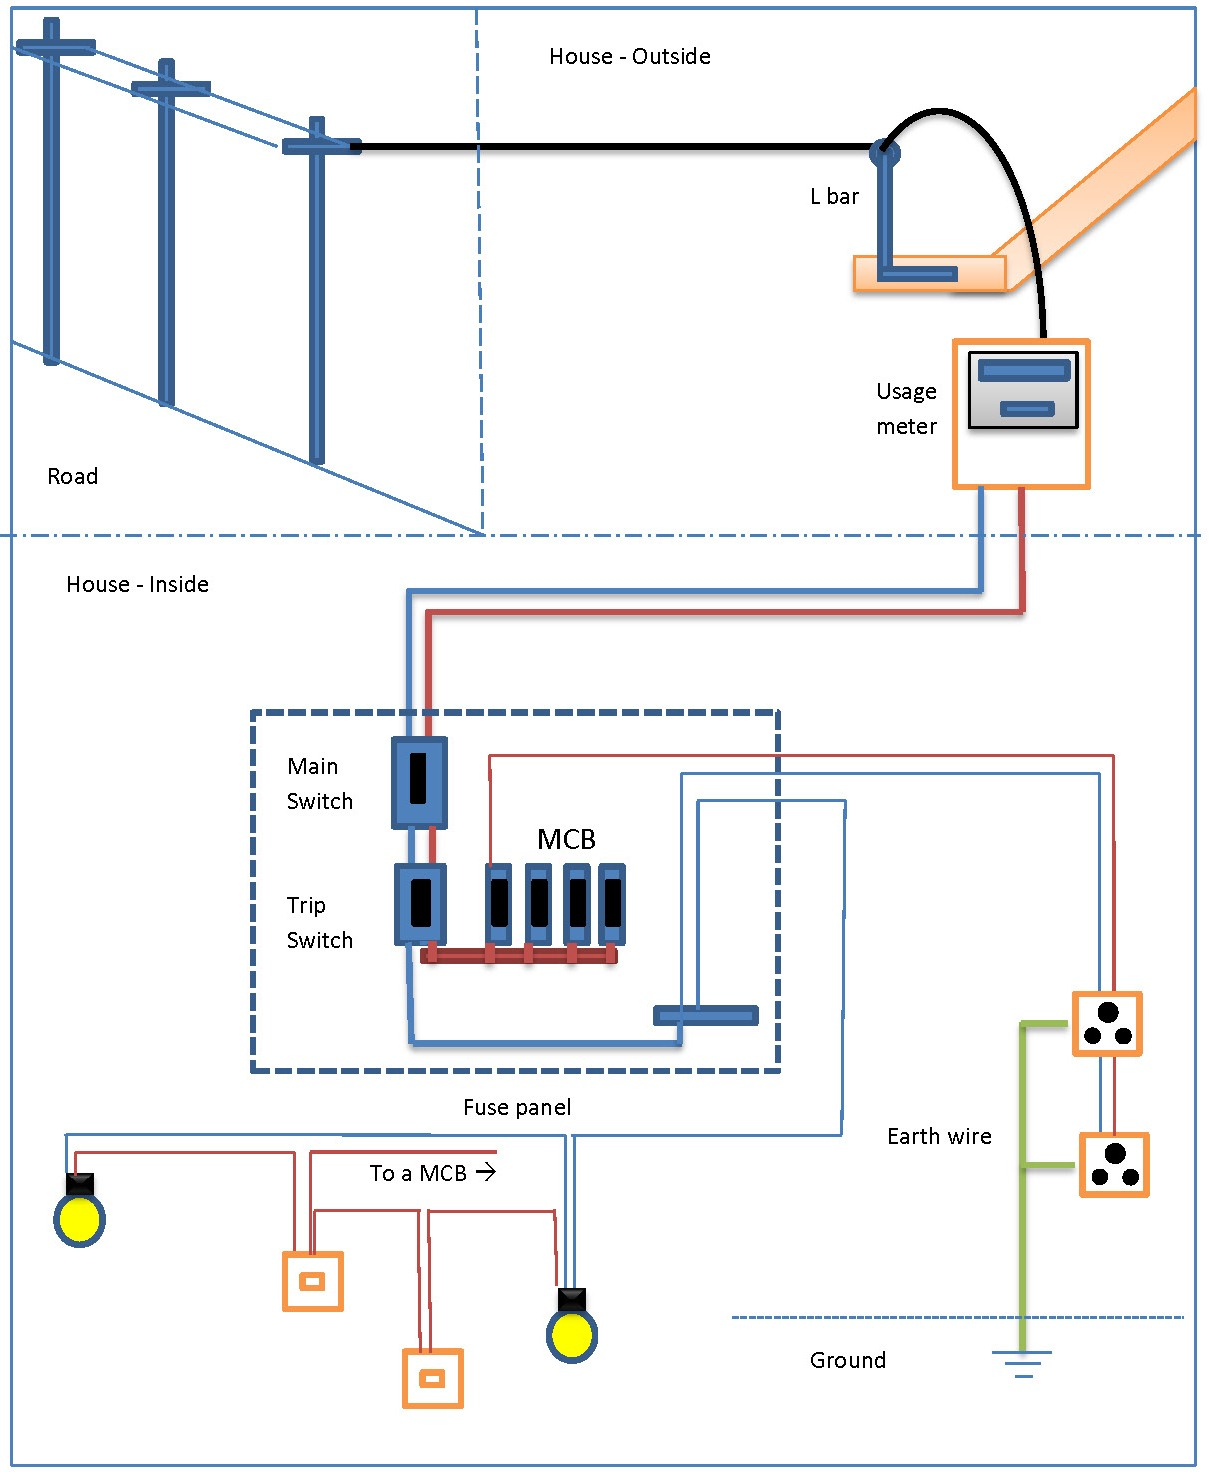 Doc3 senasum's blog house wiring diagram sri lanka house wiring diagrams at gsmportal.co